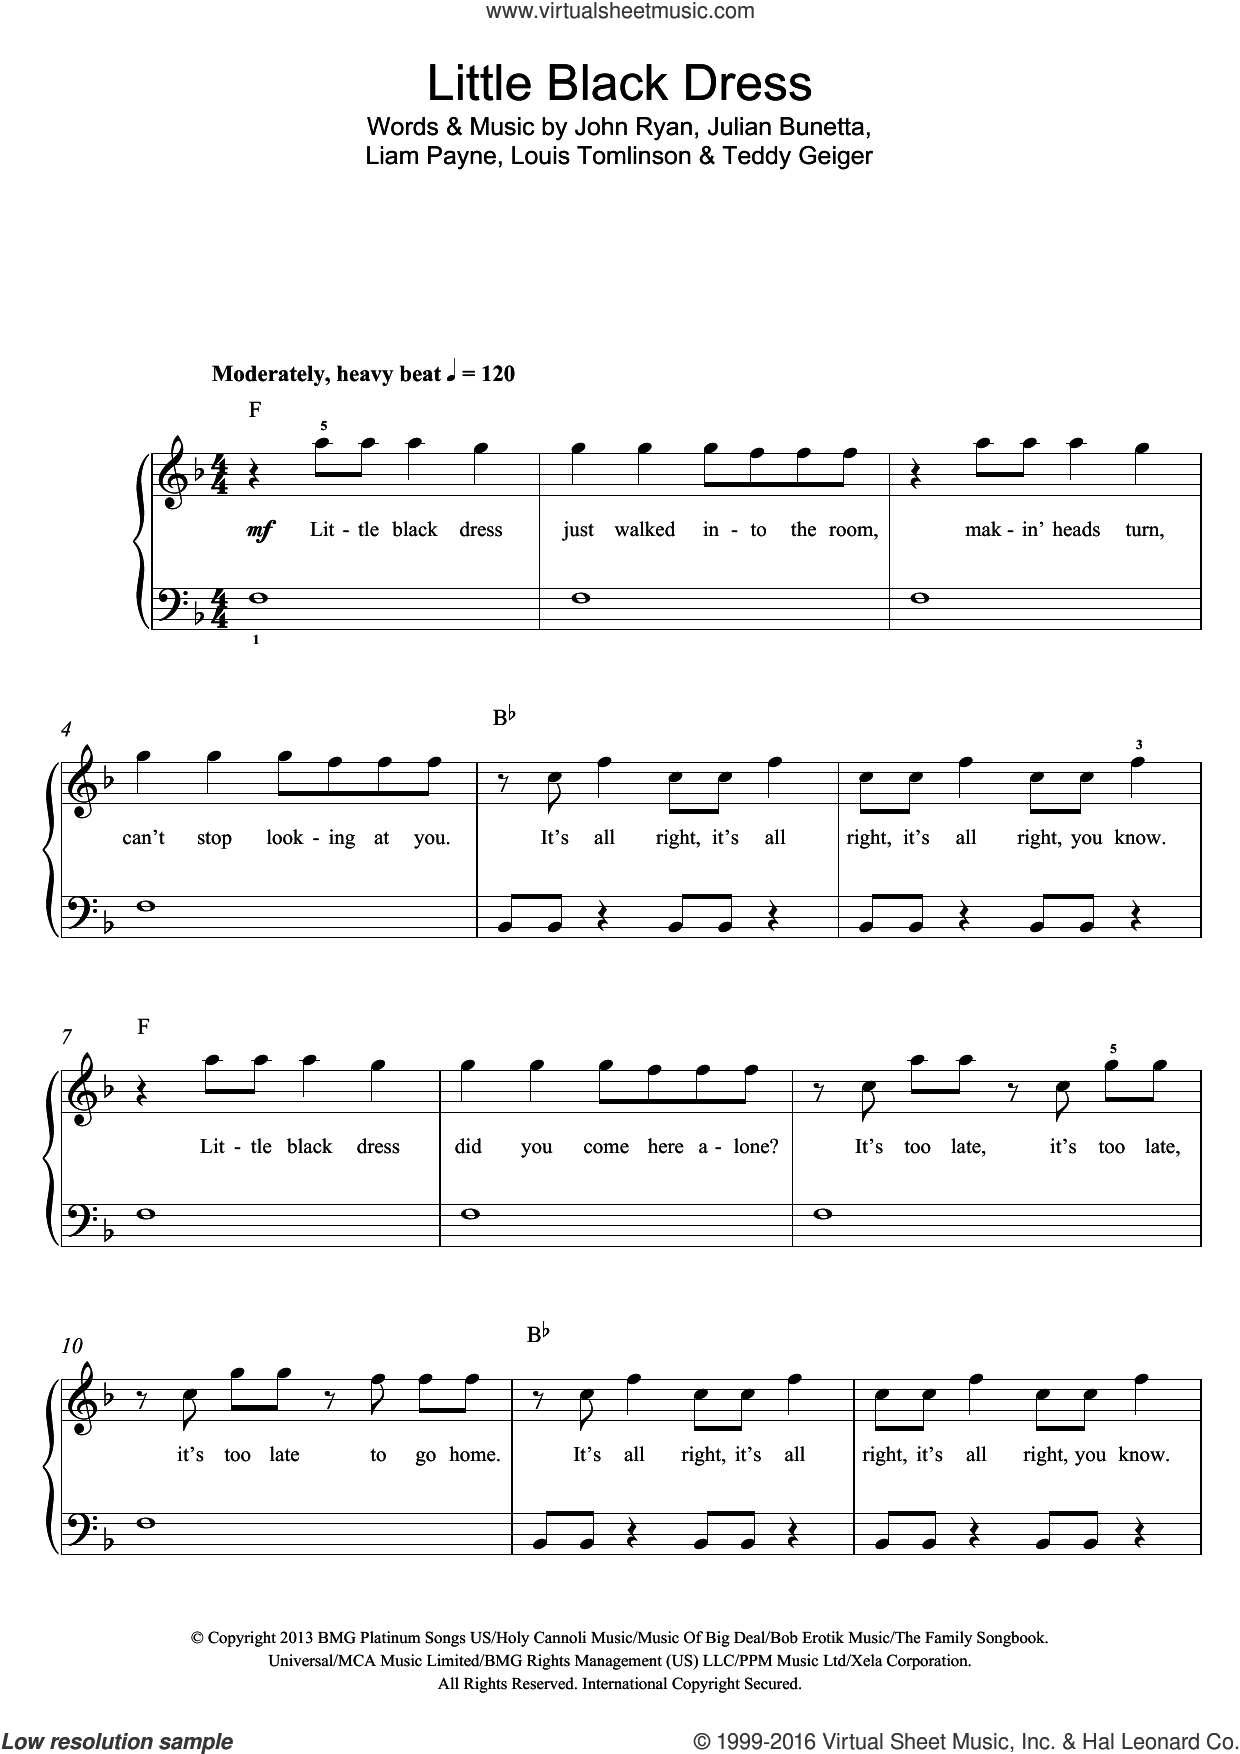 Little Black Dress sheet music for voice, piano or guitar by One Direction, John Ryan, Julian Bunetta, Liam Payne, Louis Tomlinson and Teddy Geiger, intermediate voice, piano or guitar. Score Image Preview.